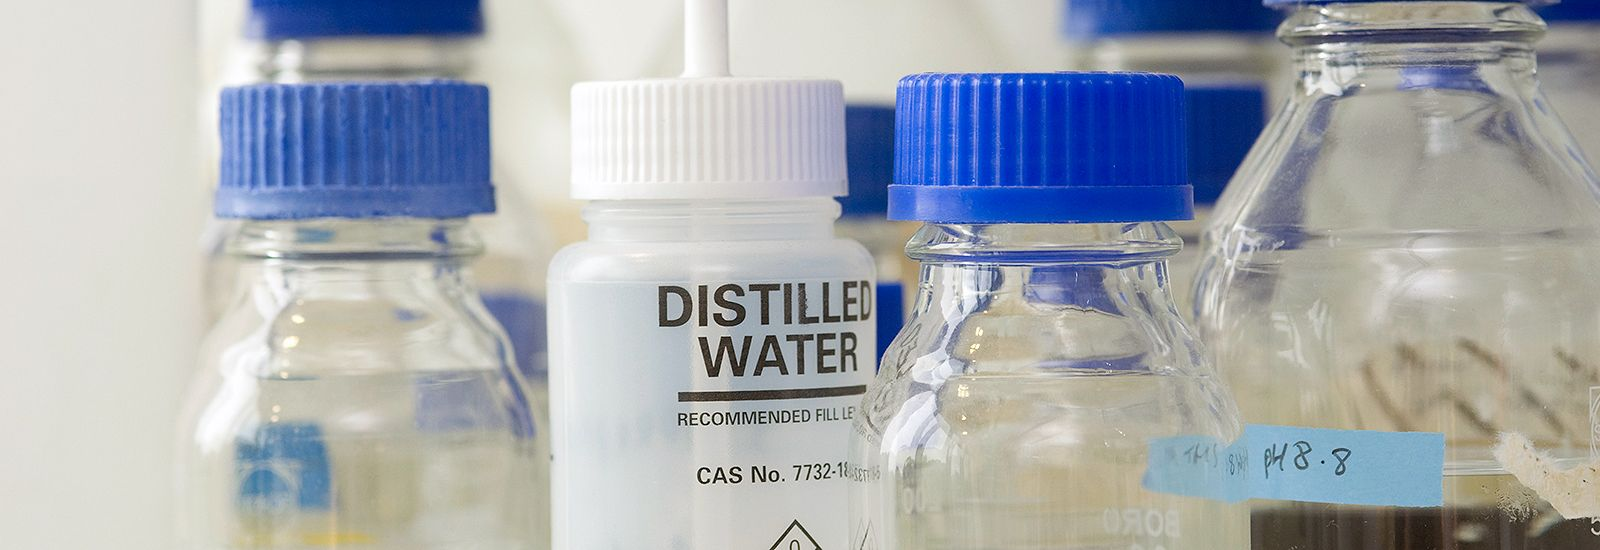 Bottles of distilled water